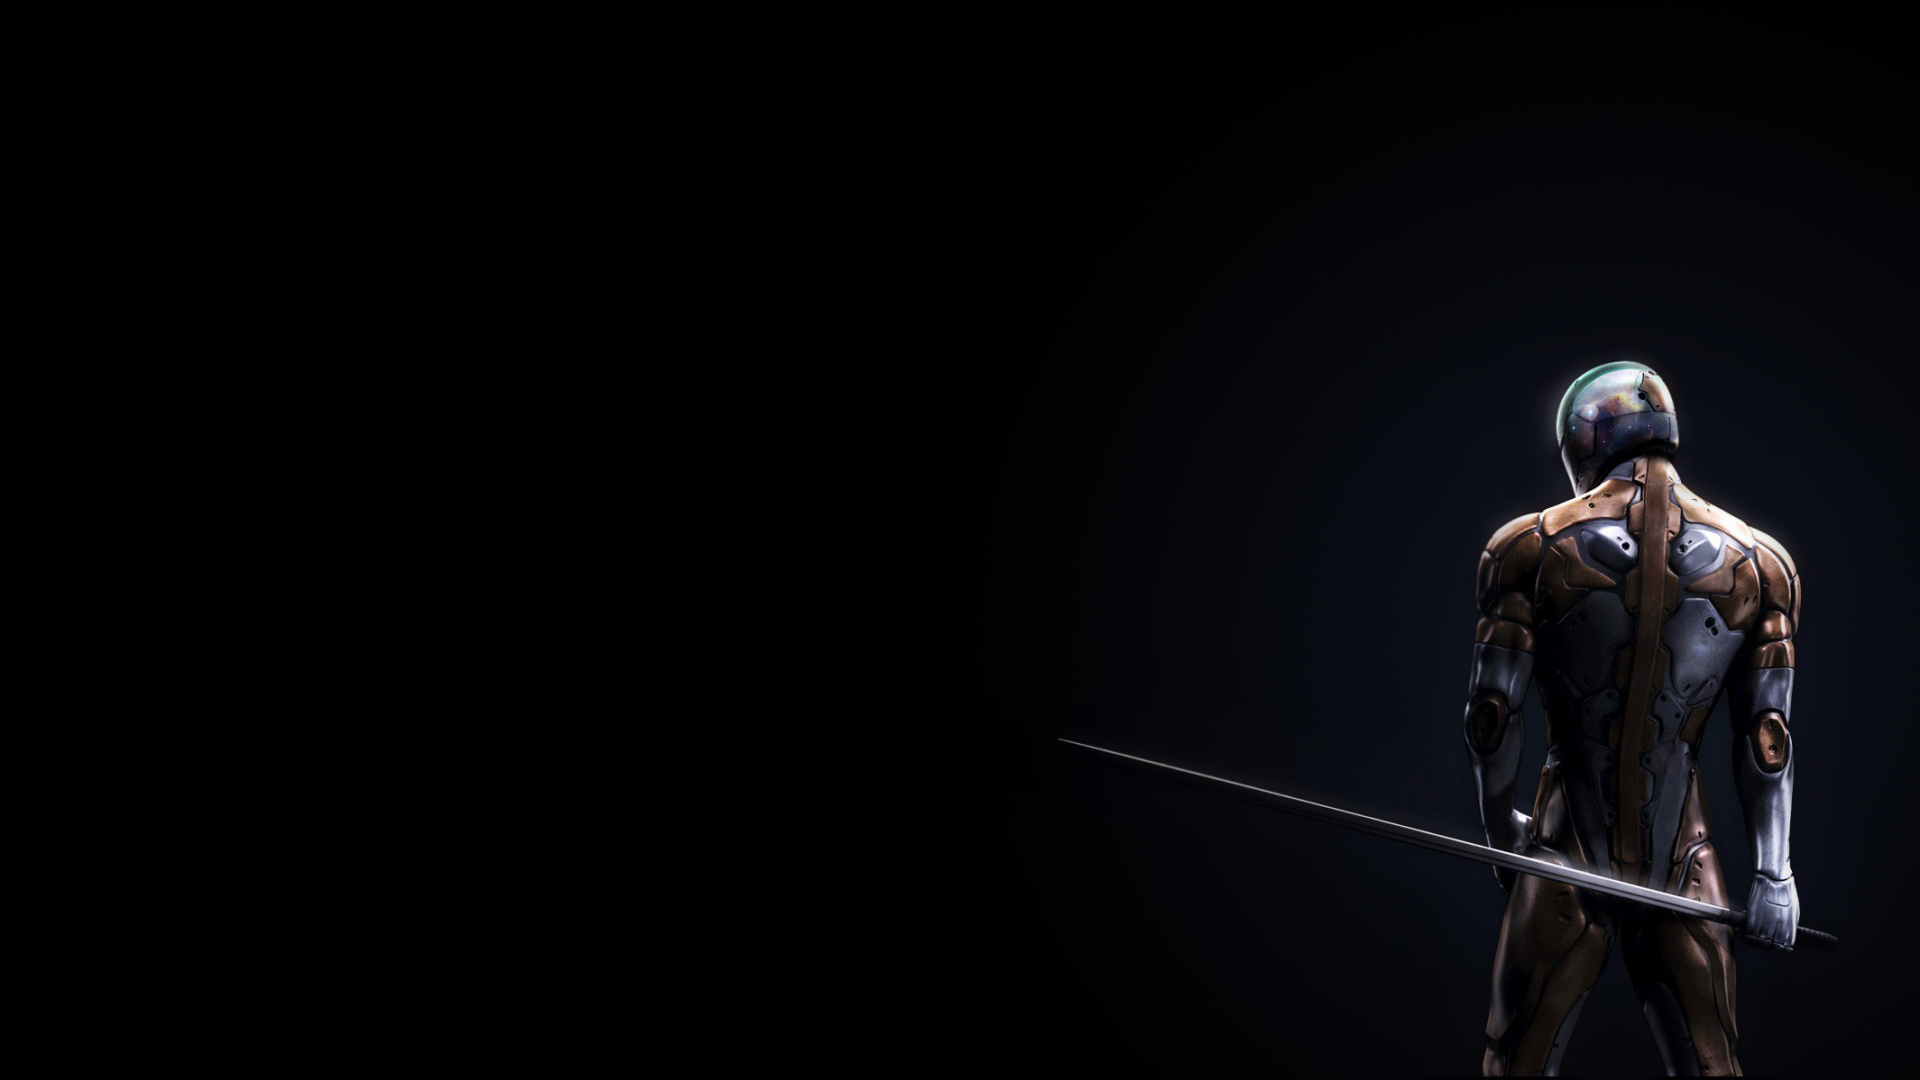 Cyborg Ninja Full HD Wallpaper and Background Image ...